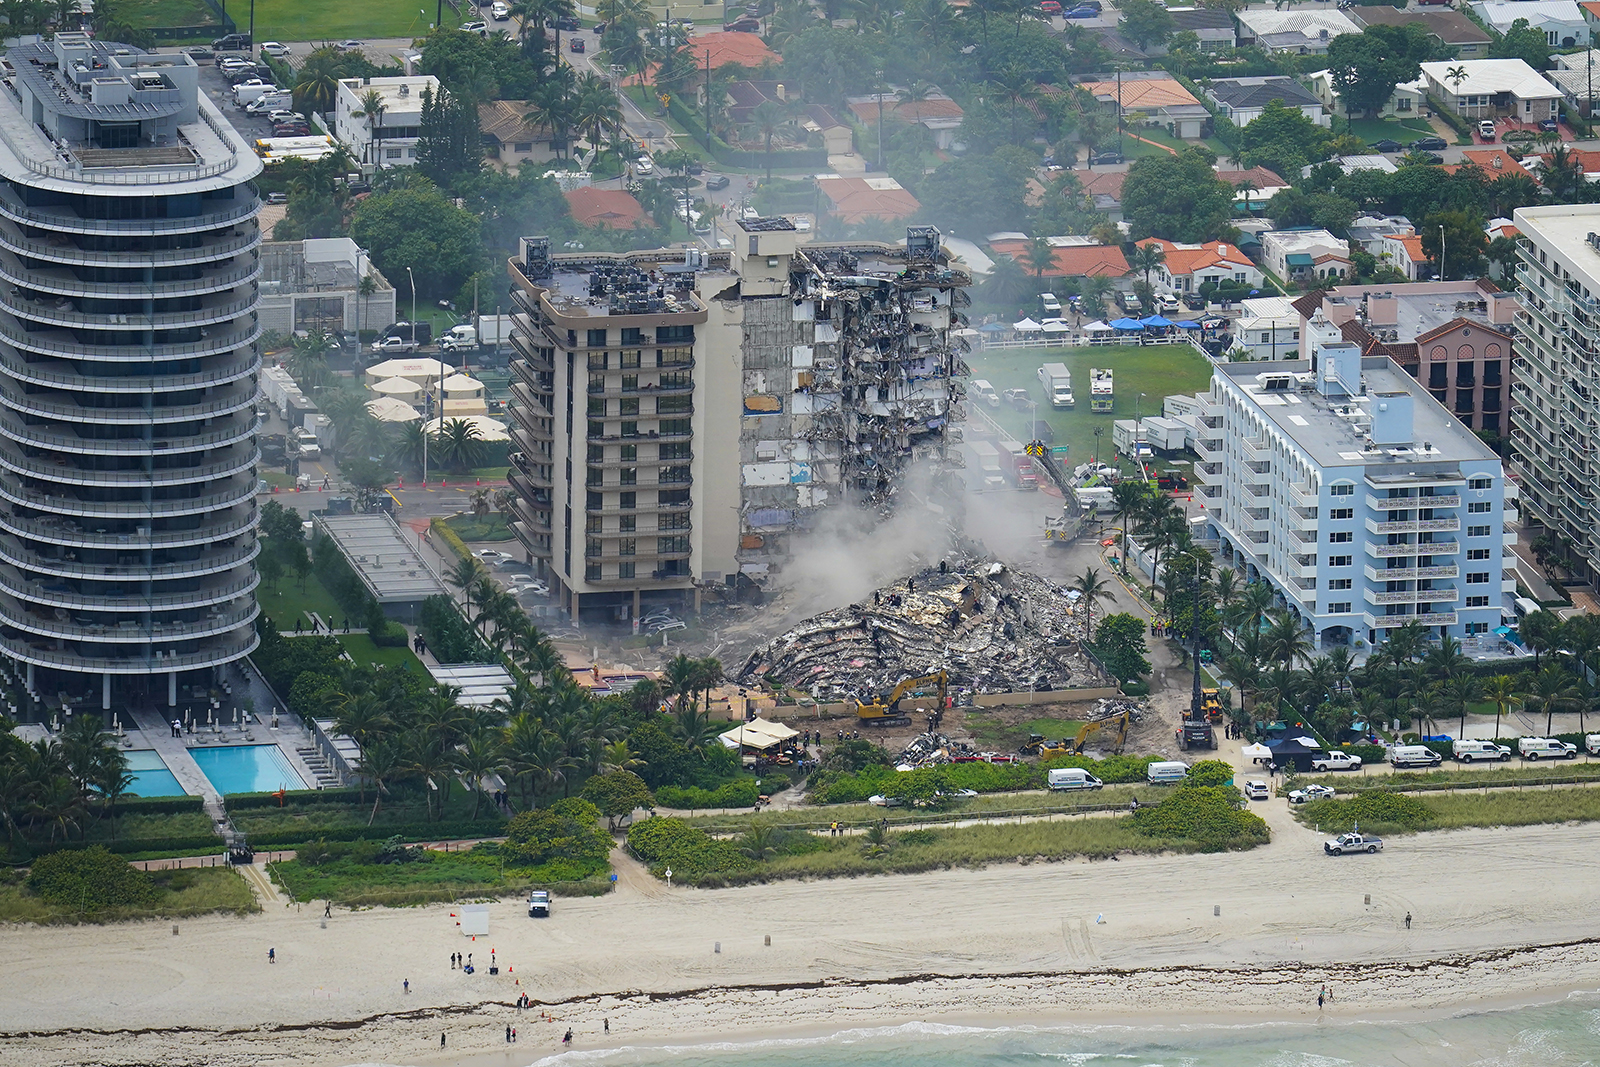 Rescue personnel work in the rubble at the Champlain Towers South, June 25, 2021, in Surfside, Florida. The seaside condominium building partially collapsed on June 24. (AP Photo/Gerald Herbert)